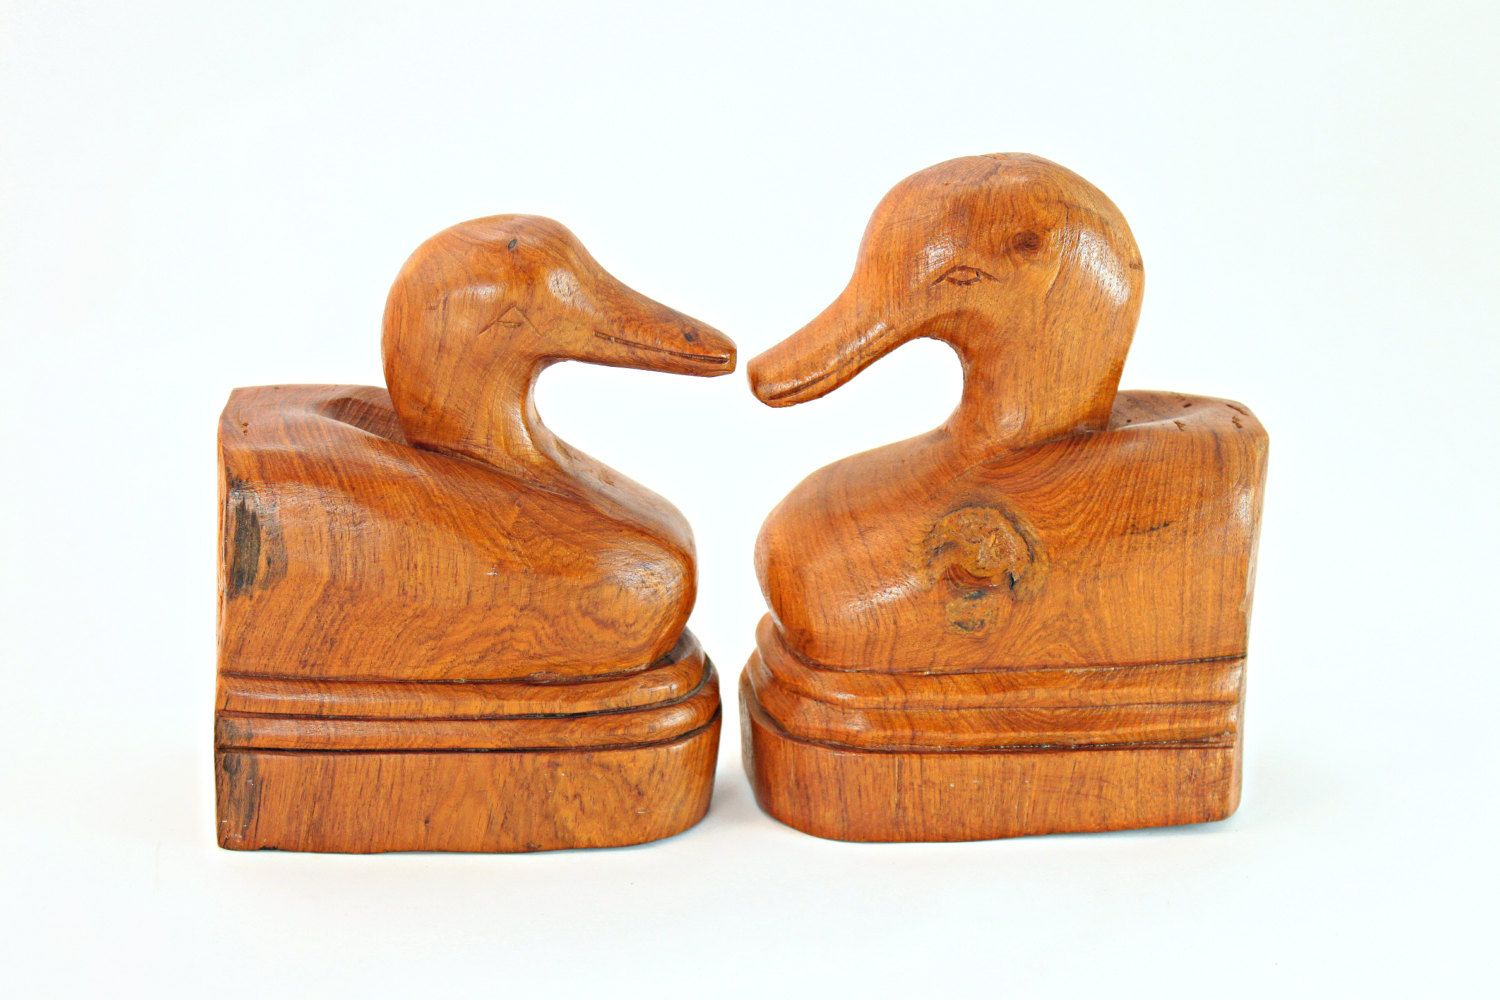 Vintage Wooden Duck Bookends, Norleans Wooden Duck Bookends, Wooden Duck Bookends, Wood Duck Bookend #etsy #vintage #etsygifts